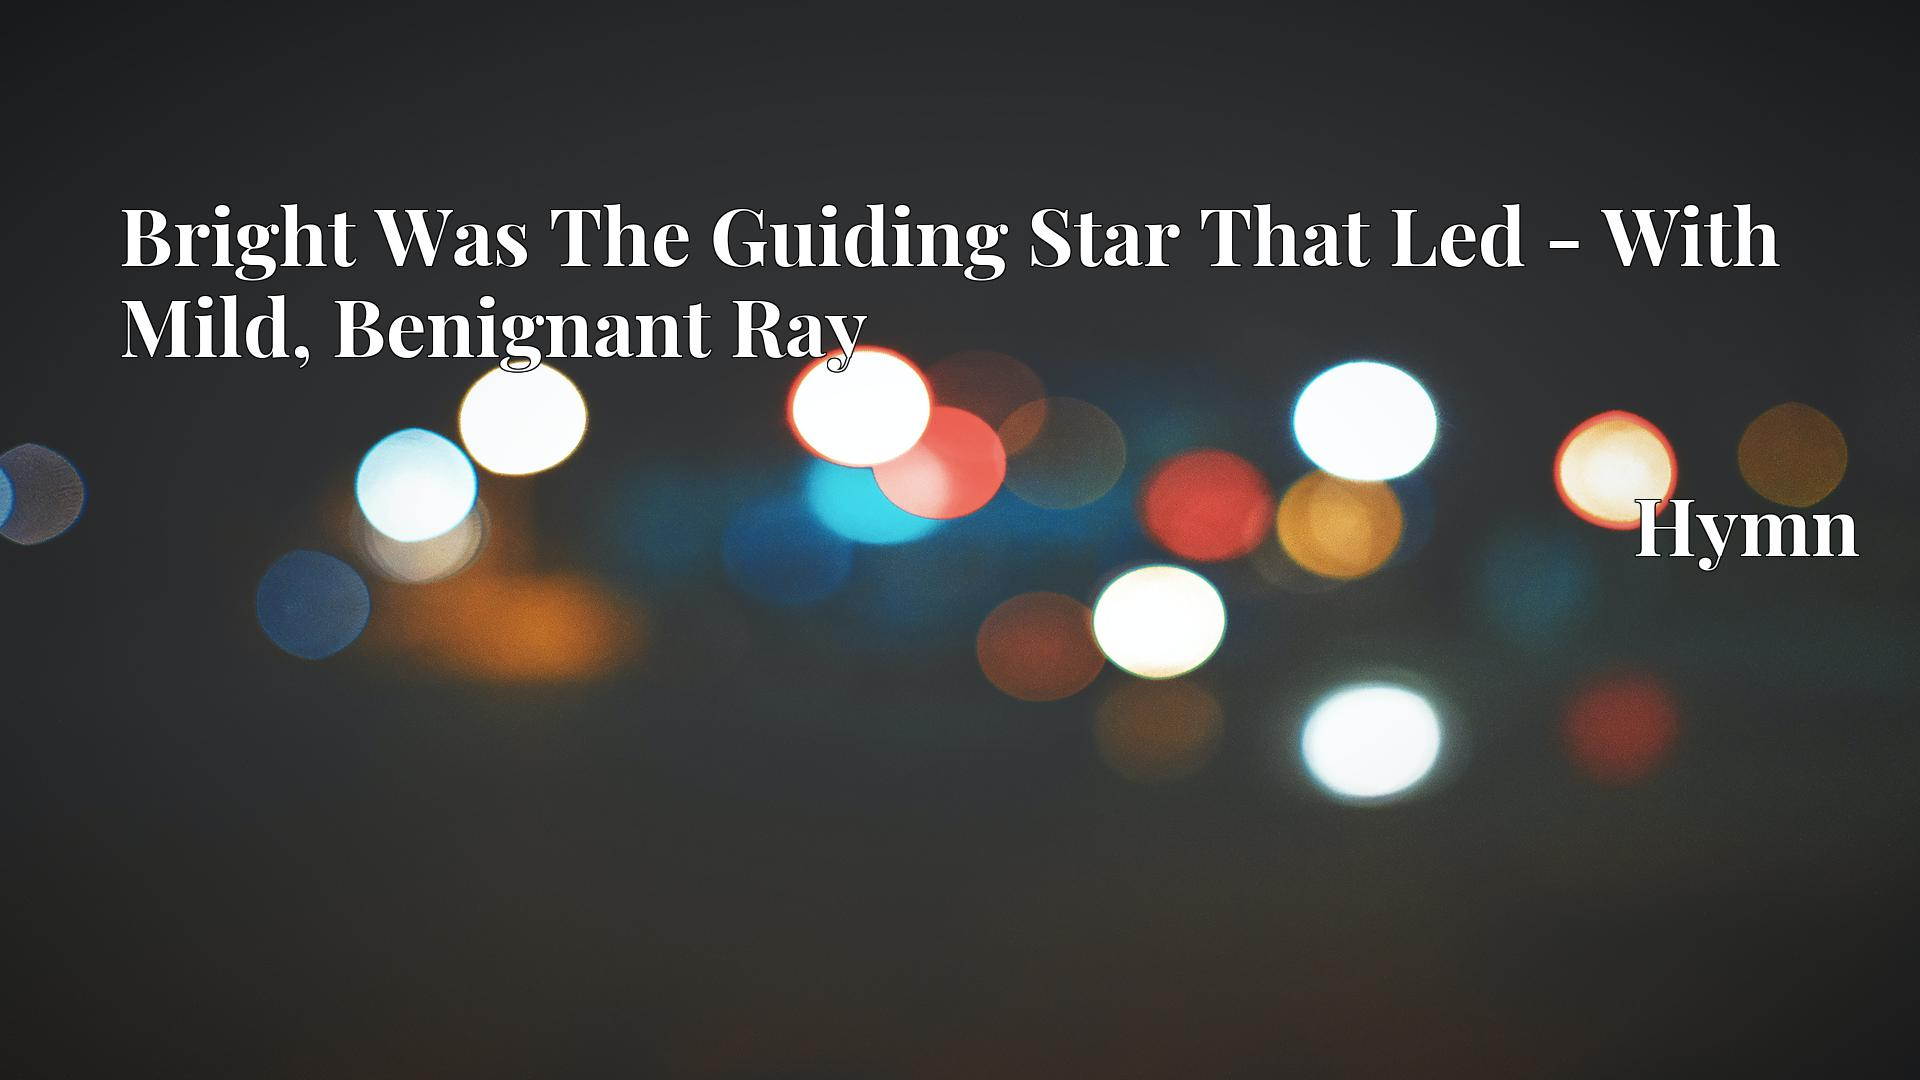 Bright Was The Guiding Star That Led - With Mild, Benignant Ray Hymn